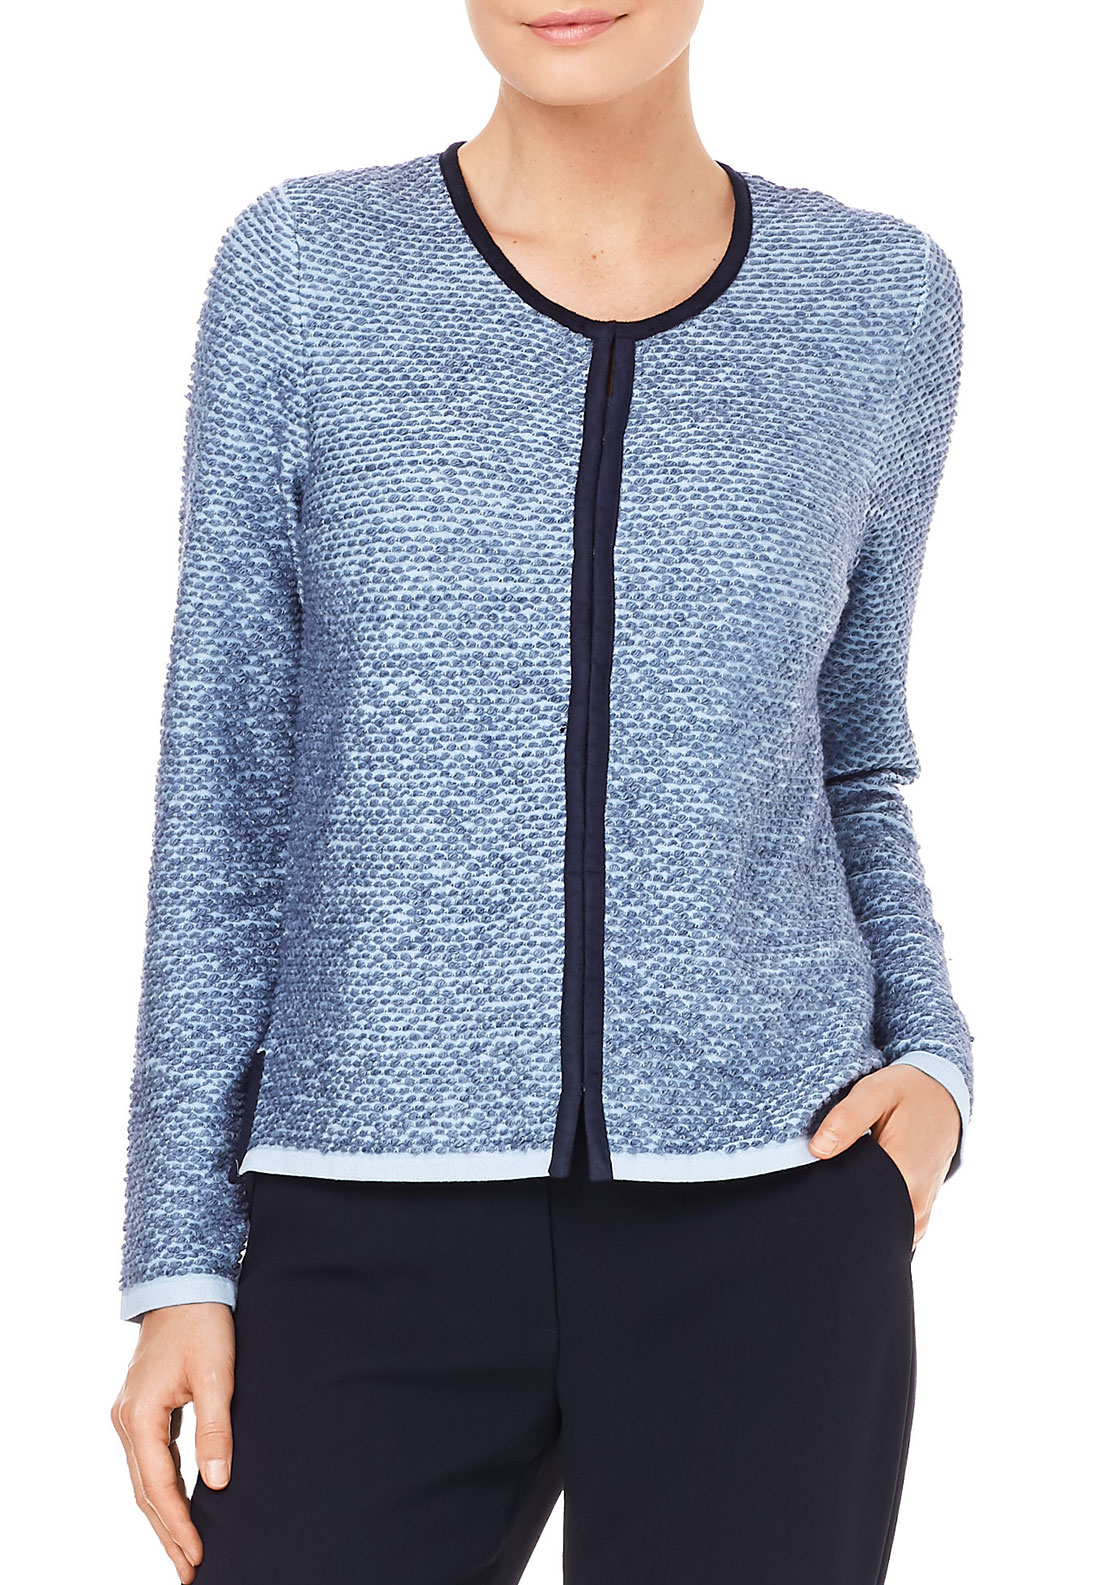 Gerry Weber Textured Cardigan, Blue